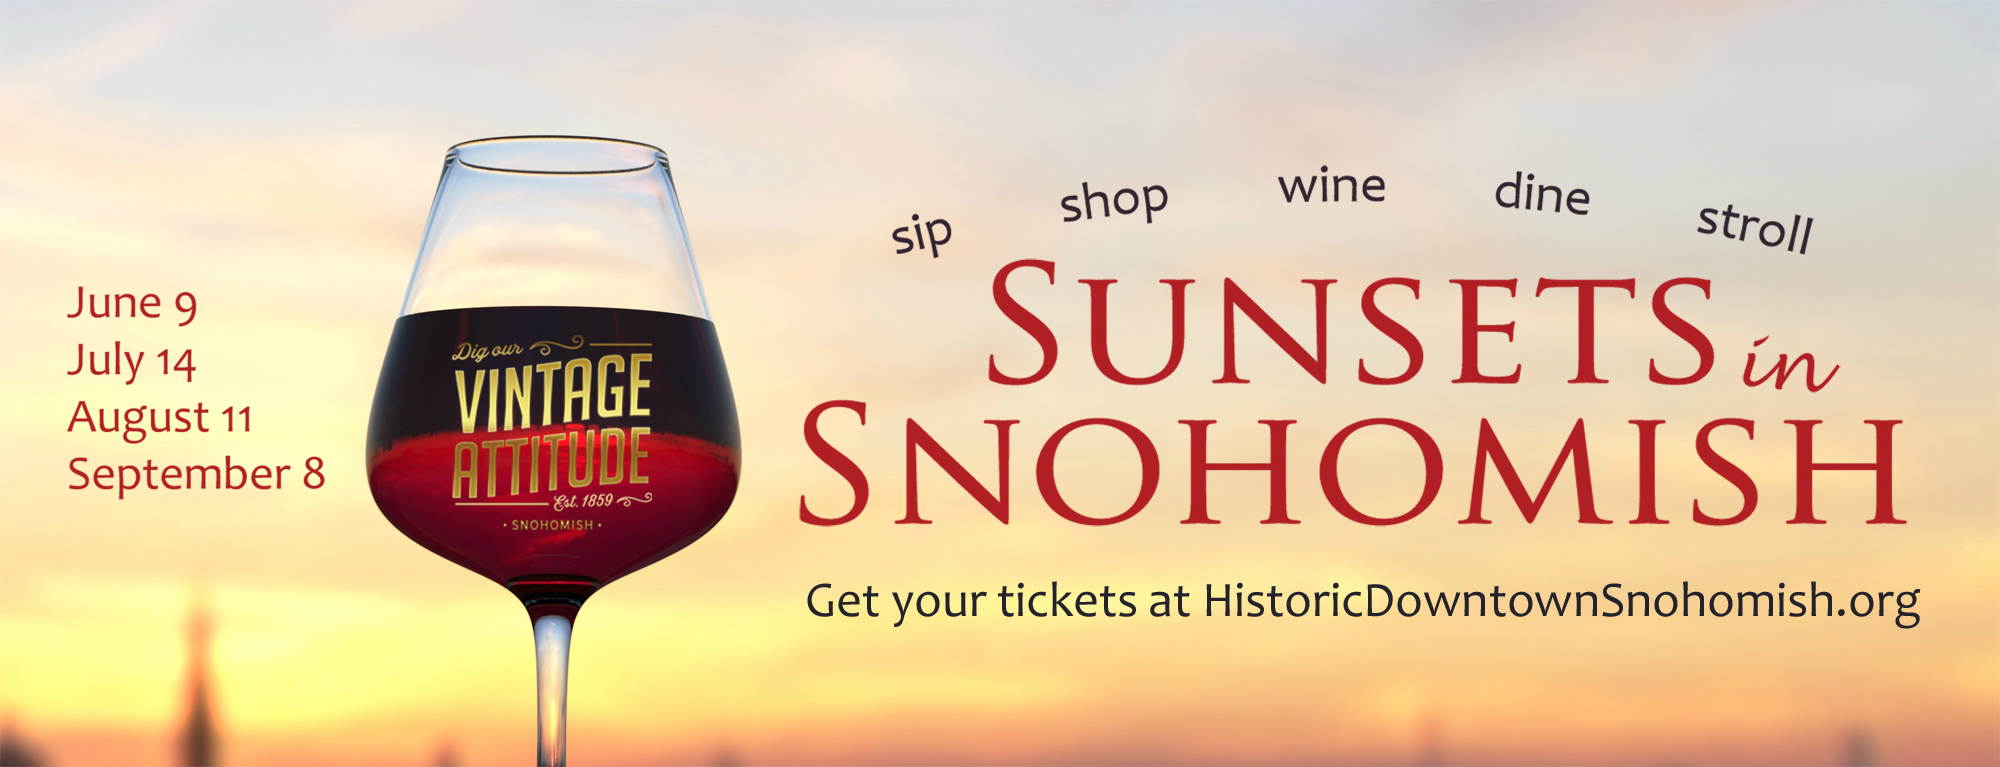 Sunsets in Snohomish 2018 banner